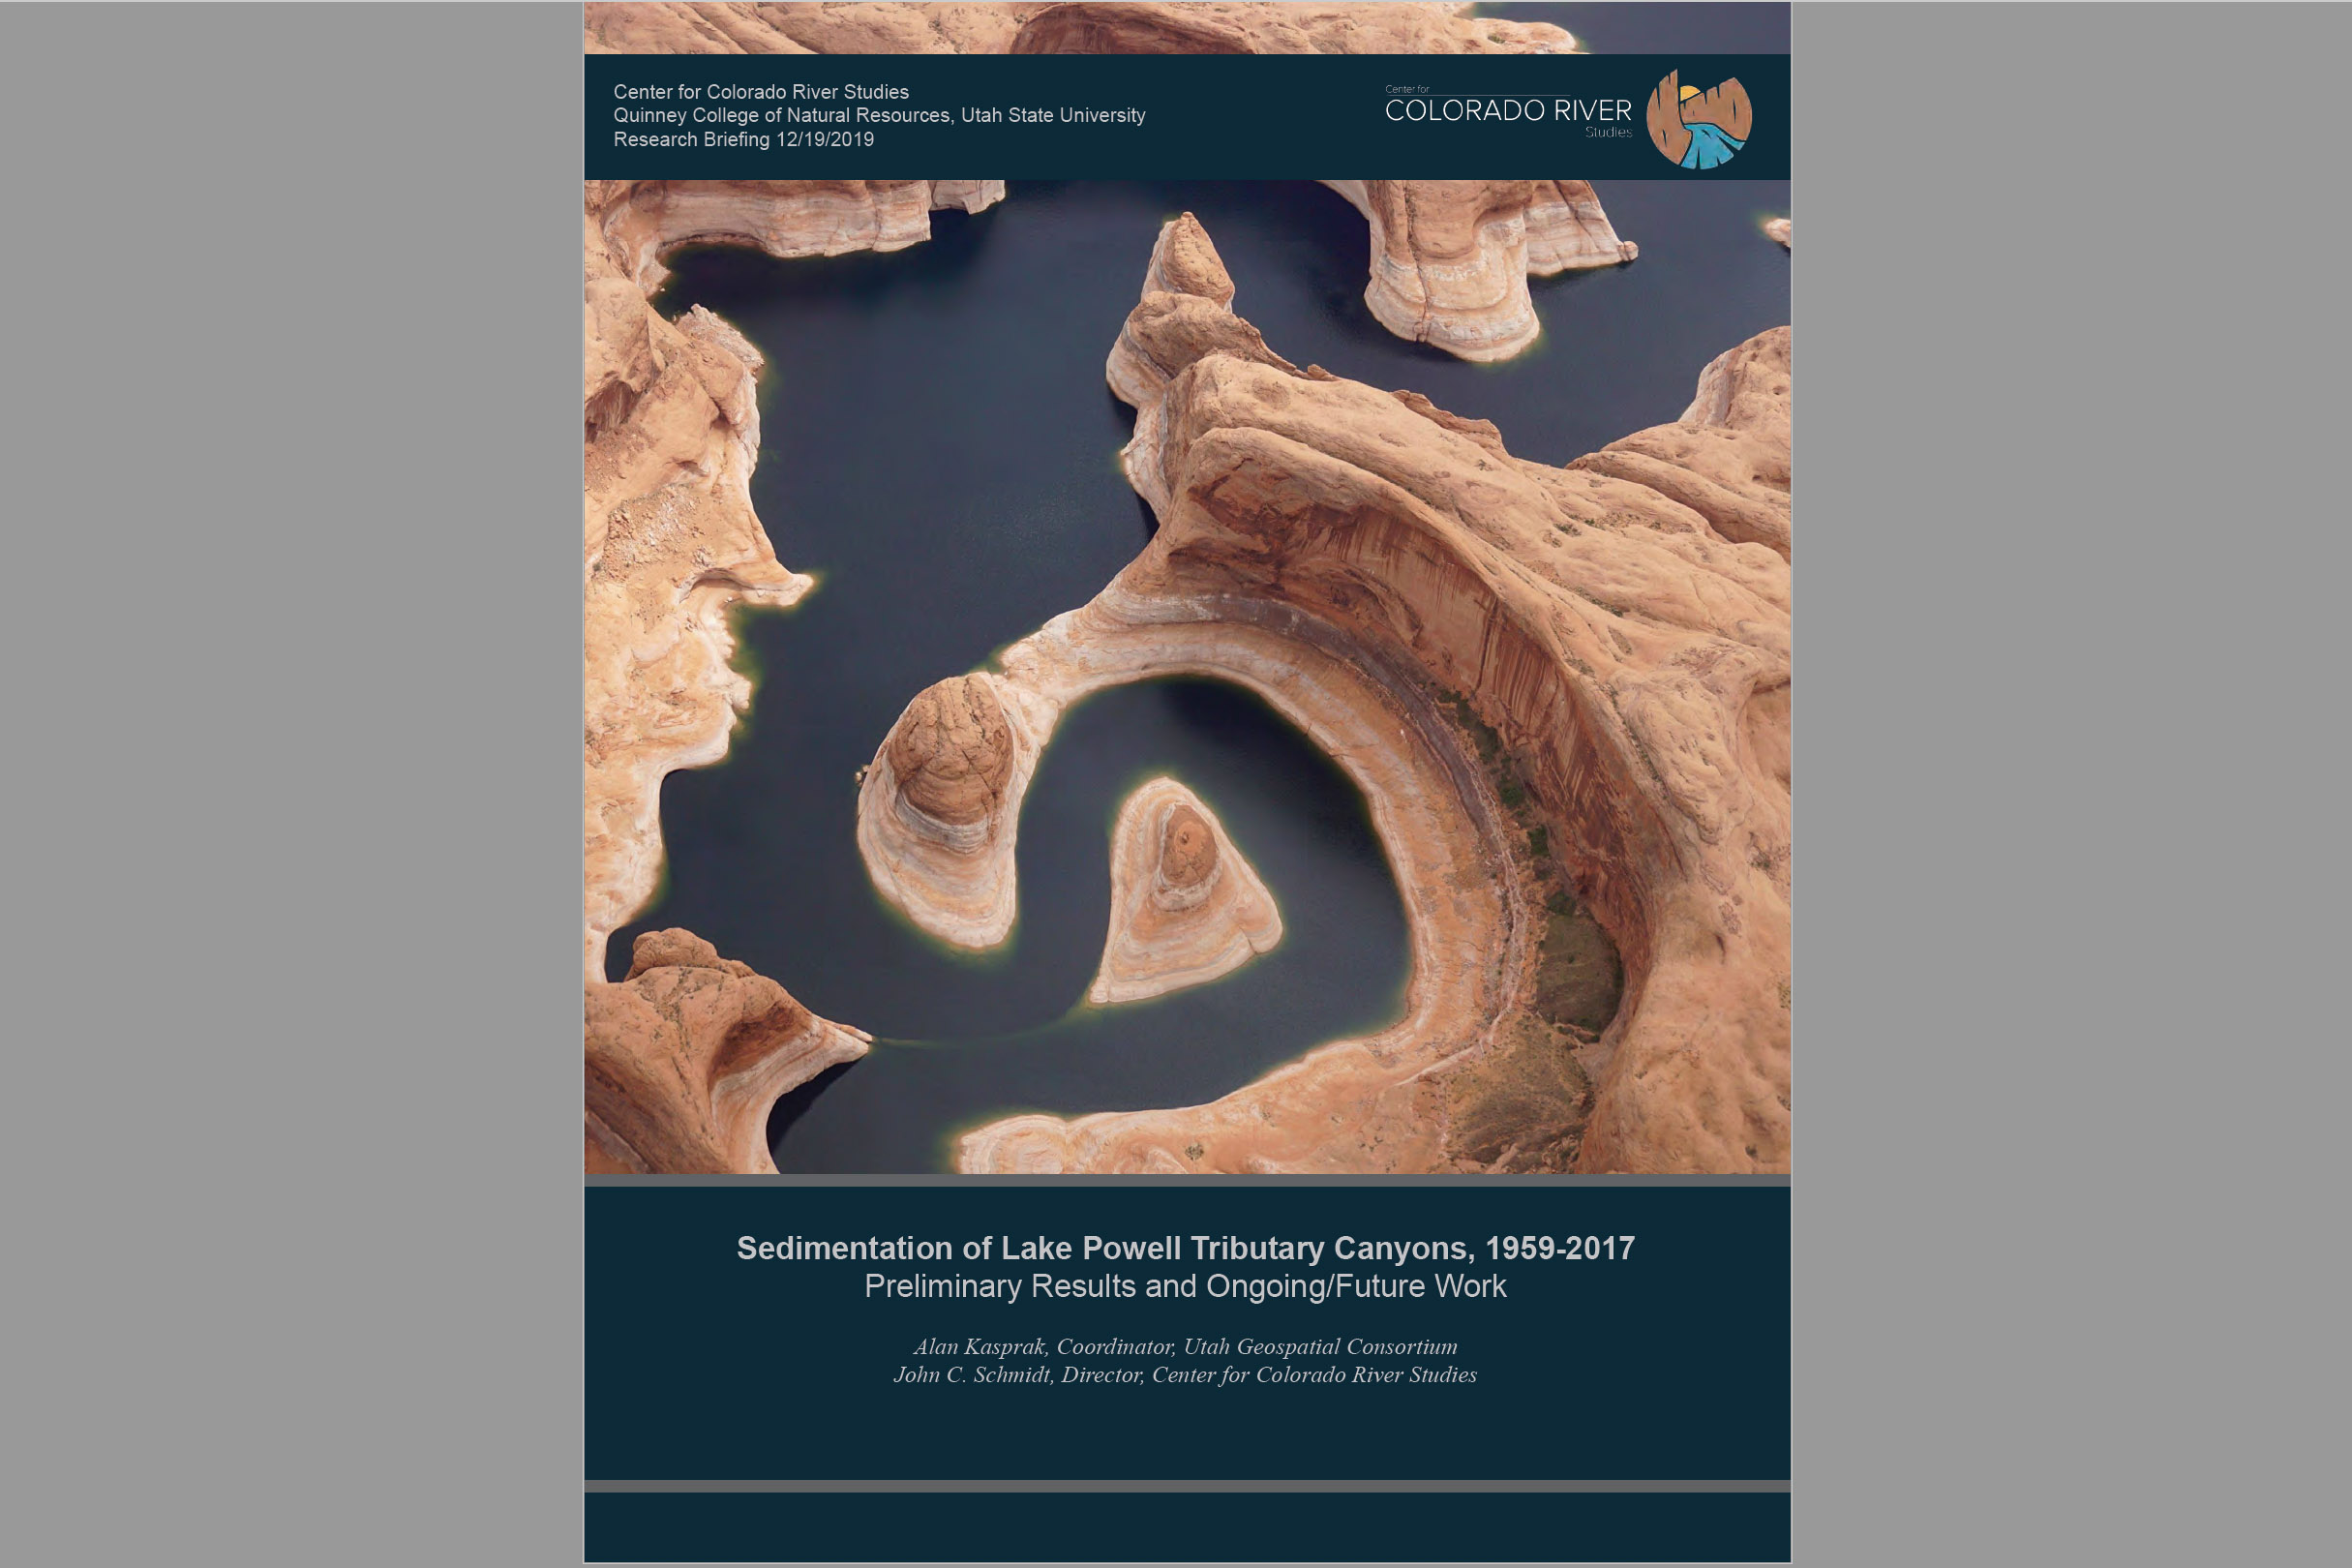 Research Brief: Sedimentation of Lake Powell Tributary Canyons, 1959-2017